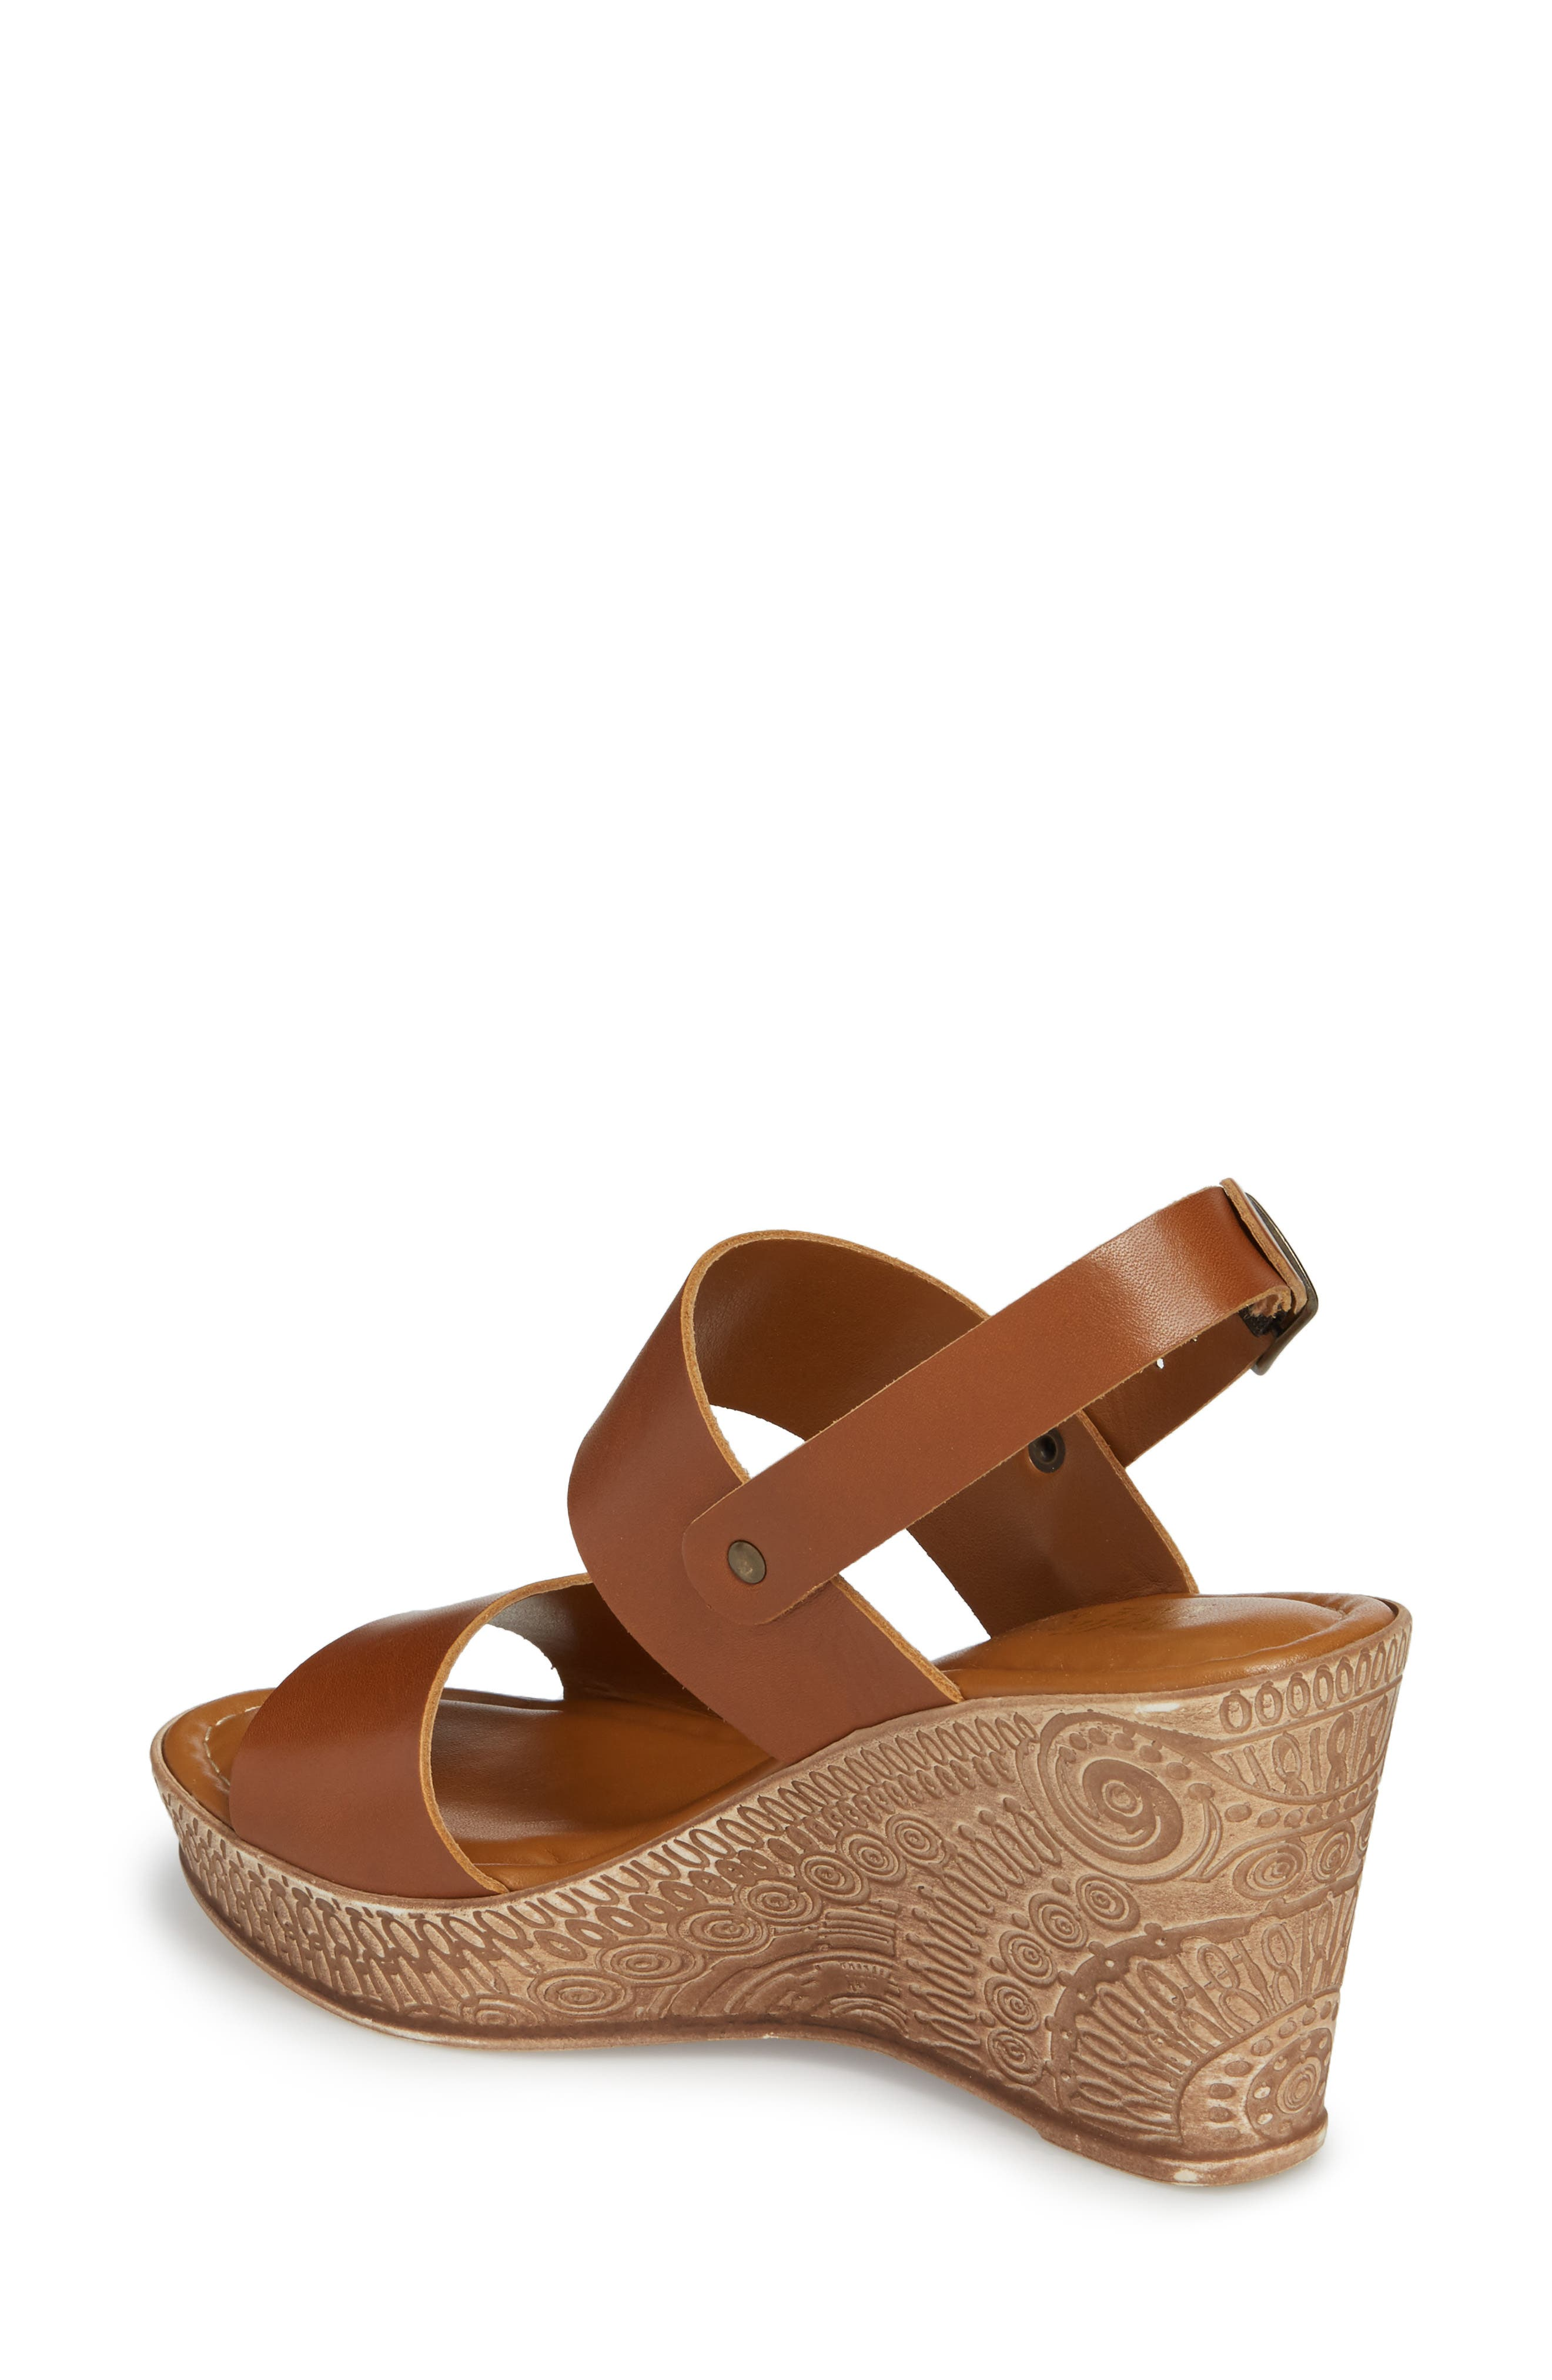 Cor Wedge Sandal,                             Alternate thumbnail 2, color,                             WHISKEY LEATHER